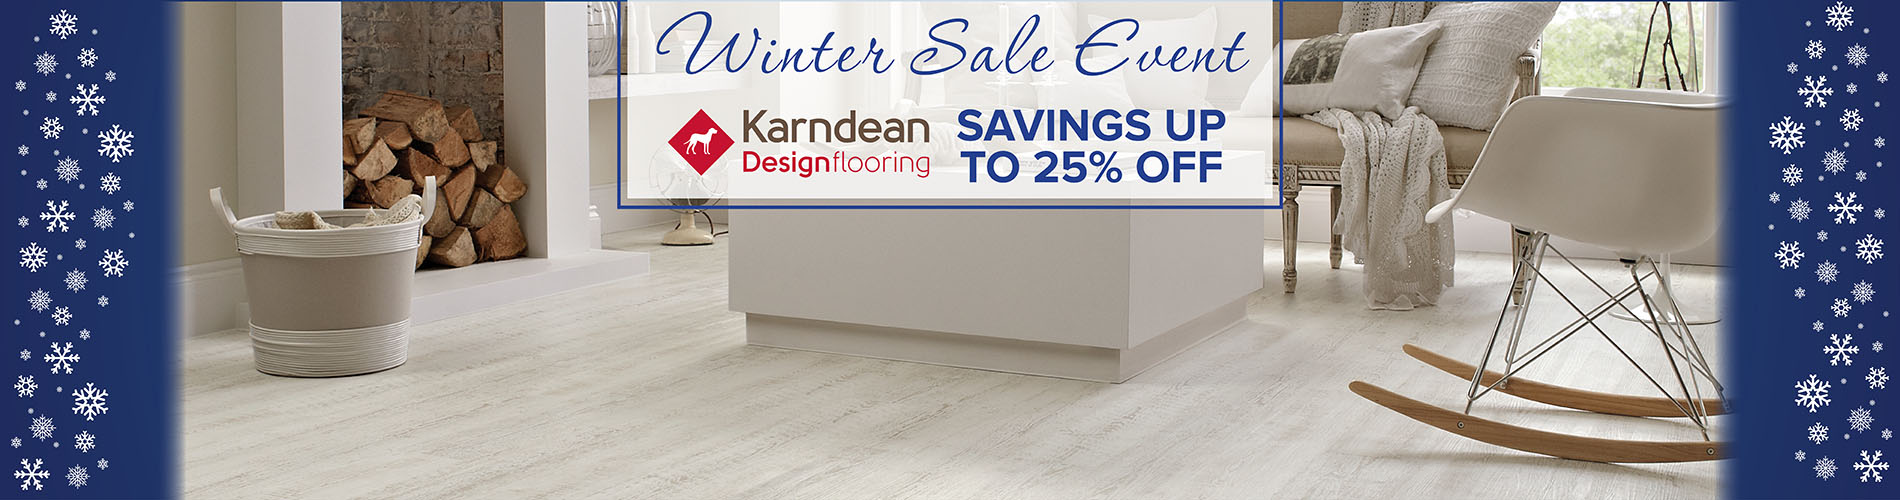 Winter Sale Event – Save up to 25% off Karndean Flooring - Only at Abbey Carpet & Floor of Puyallup, Washington